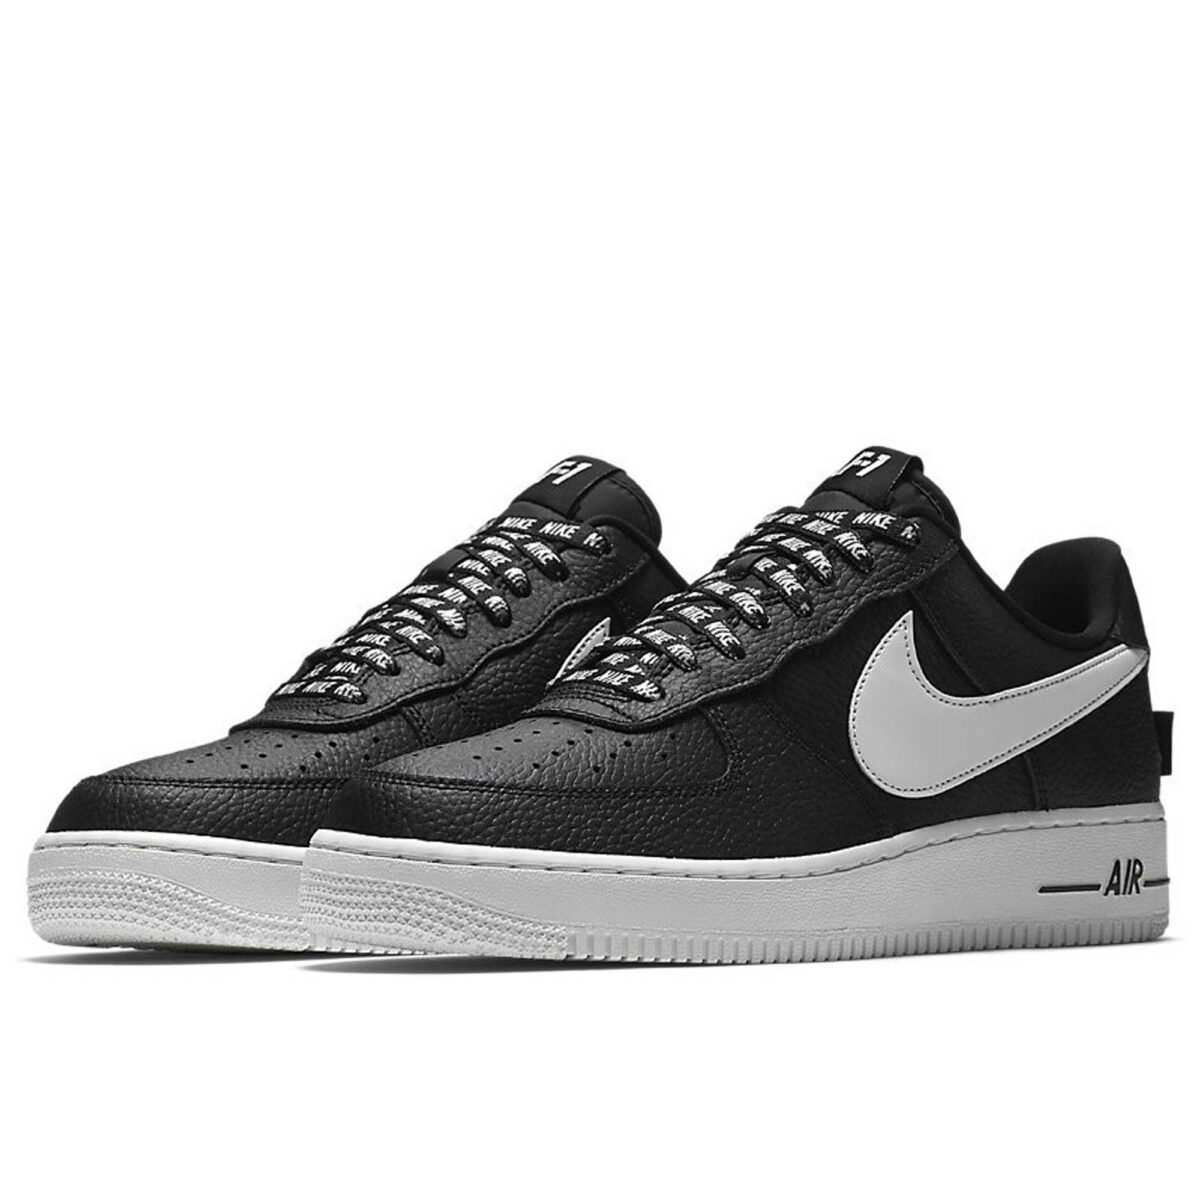 nike air force 1 '07 lv8 black white 823511_007 купить